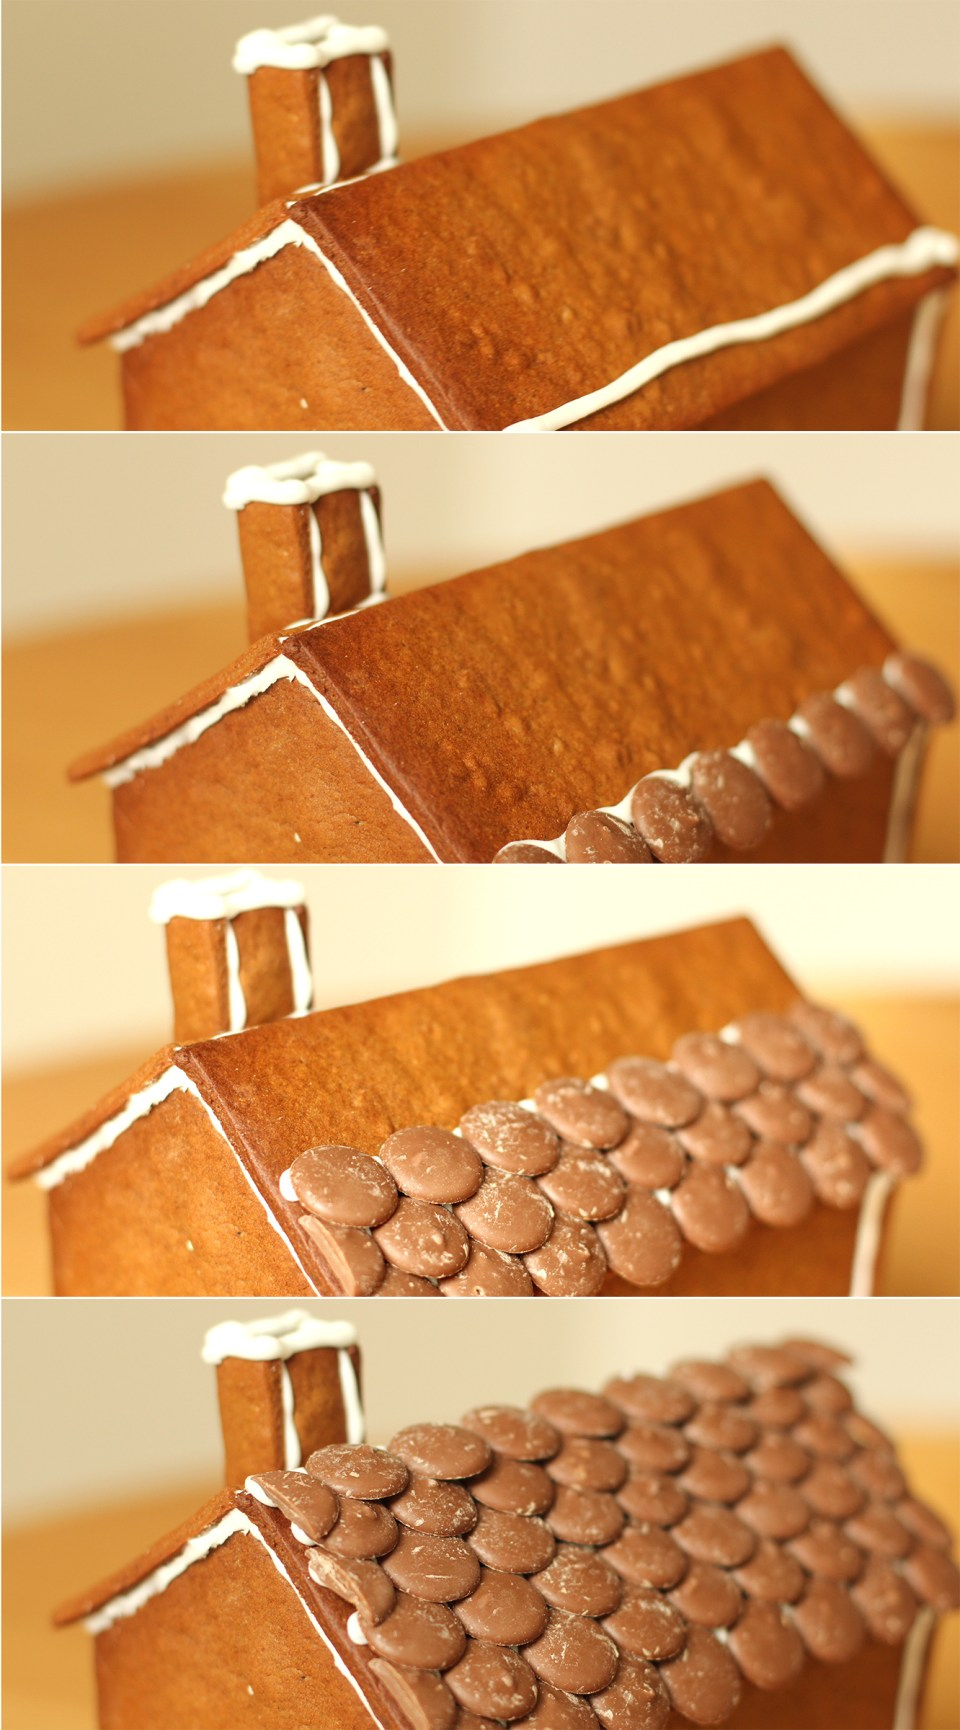 gingerbread-house-village-recipe-guide-14